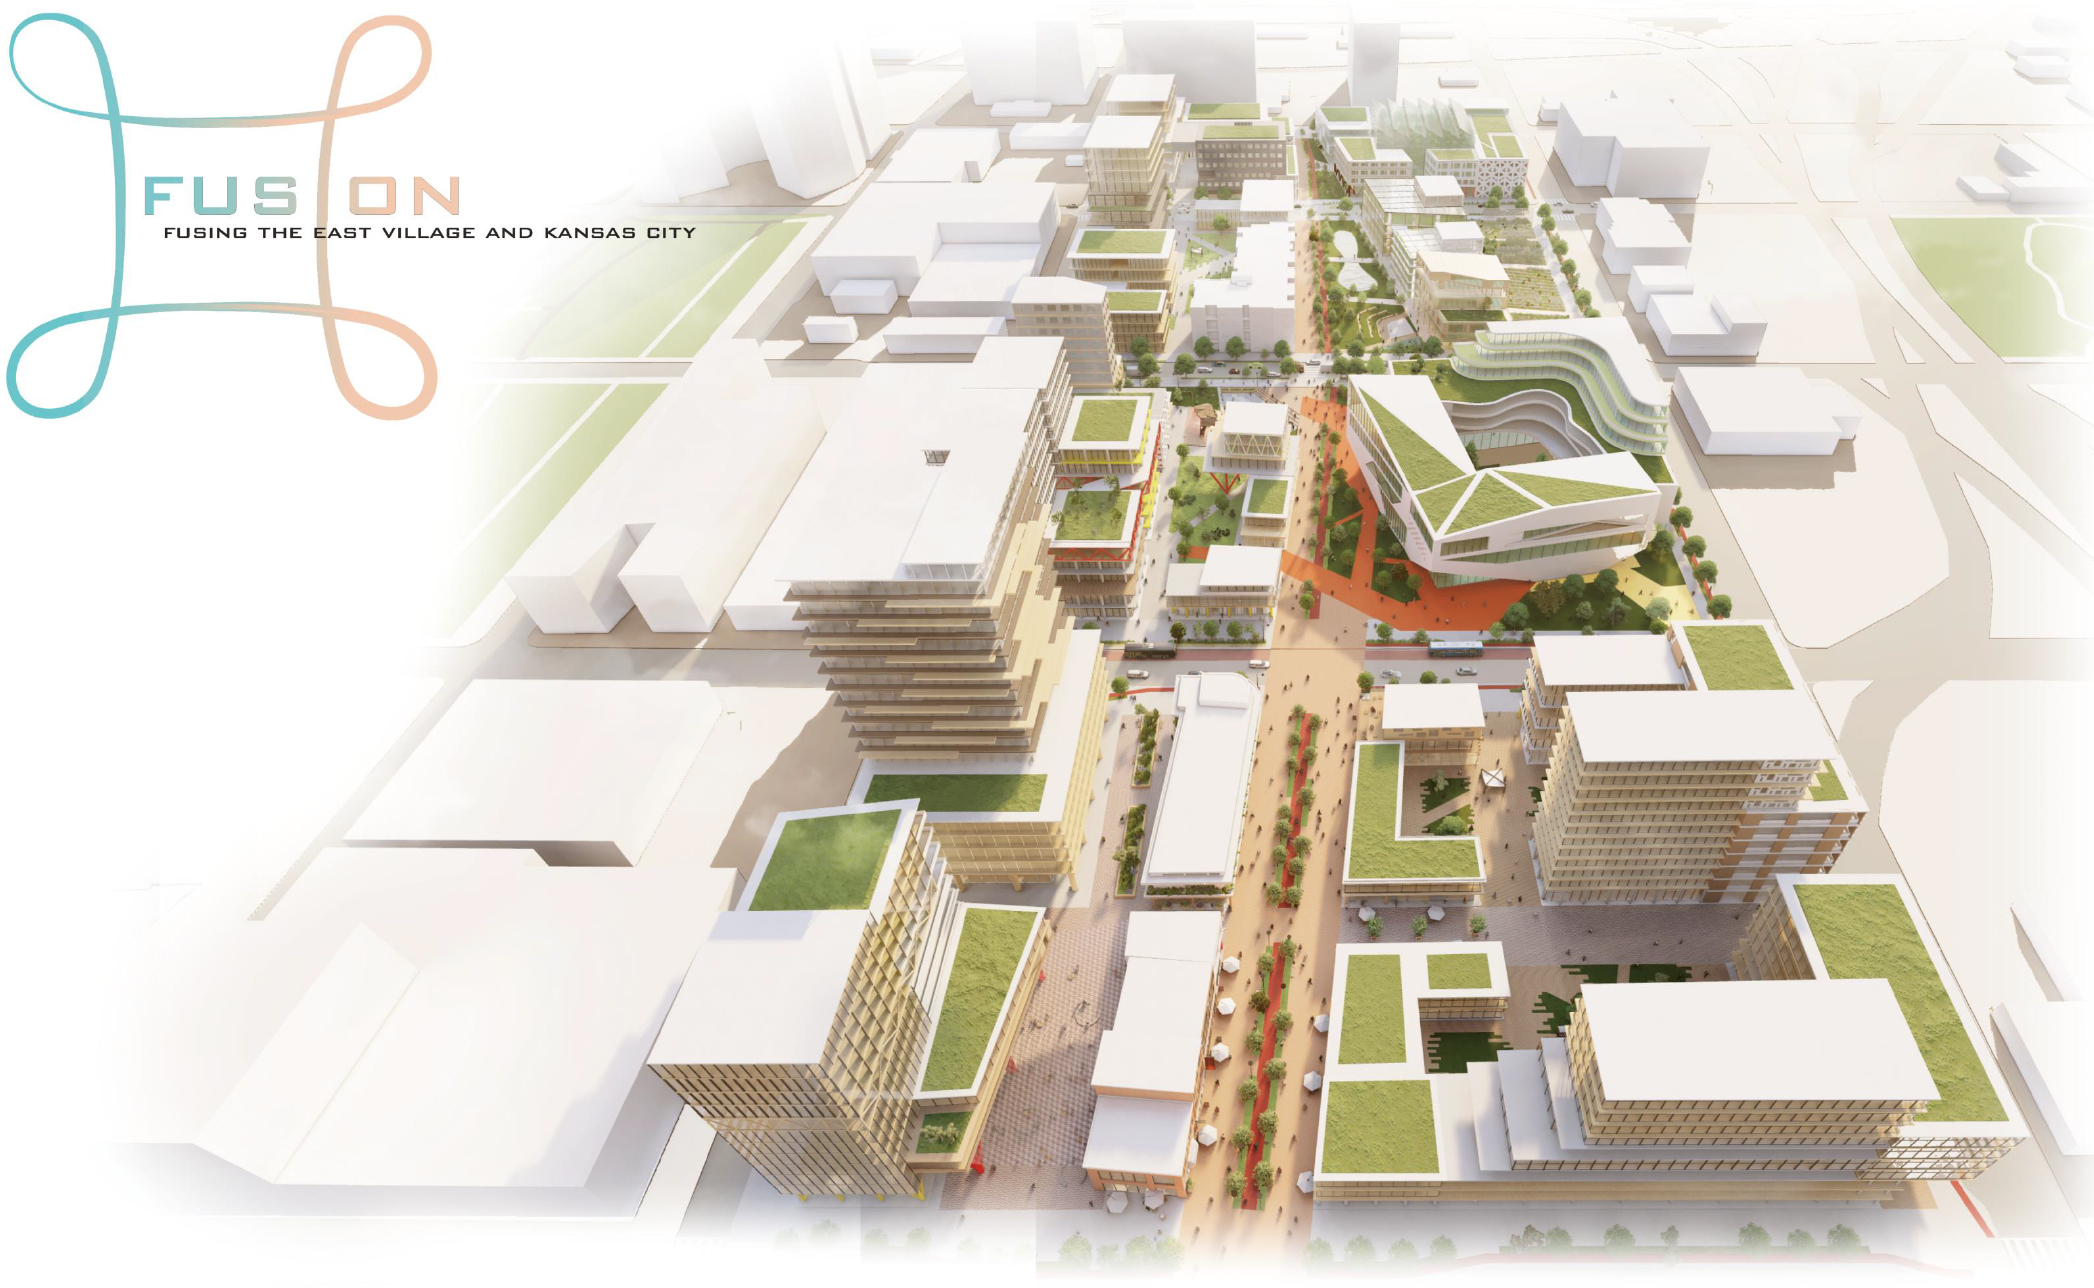 Winning proposal for Kansas City, designed by the Fusion team for ULI Hines Competition.